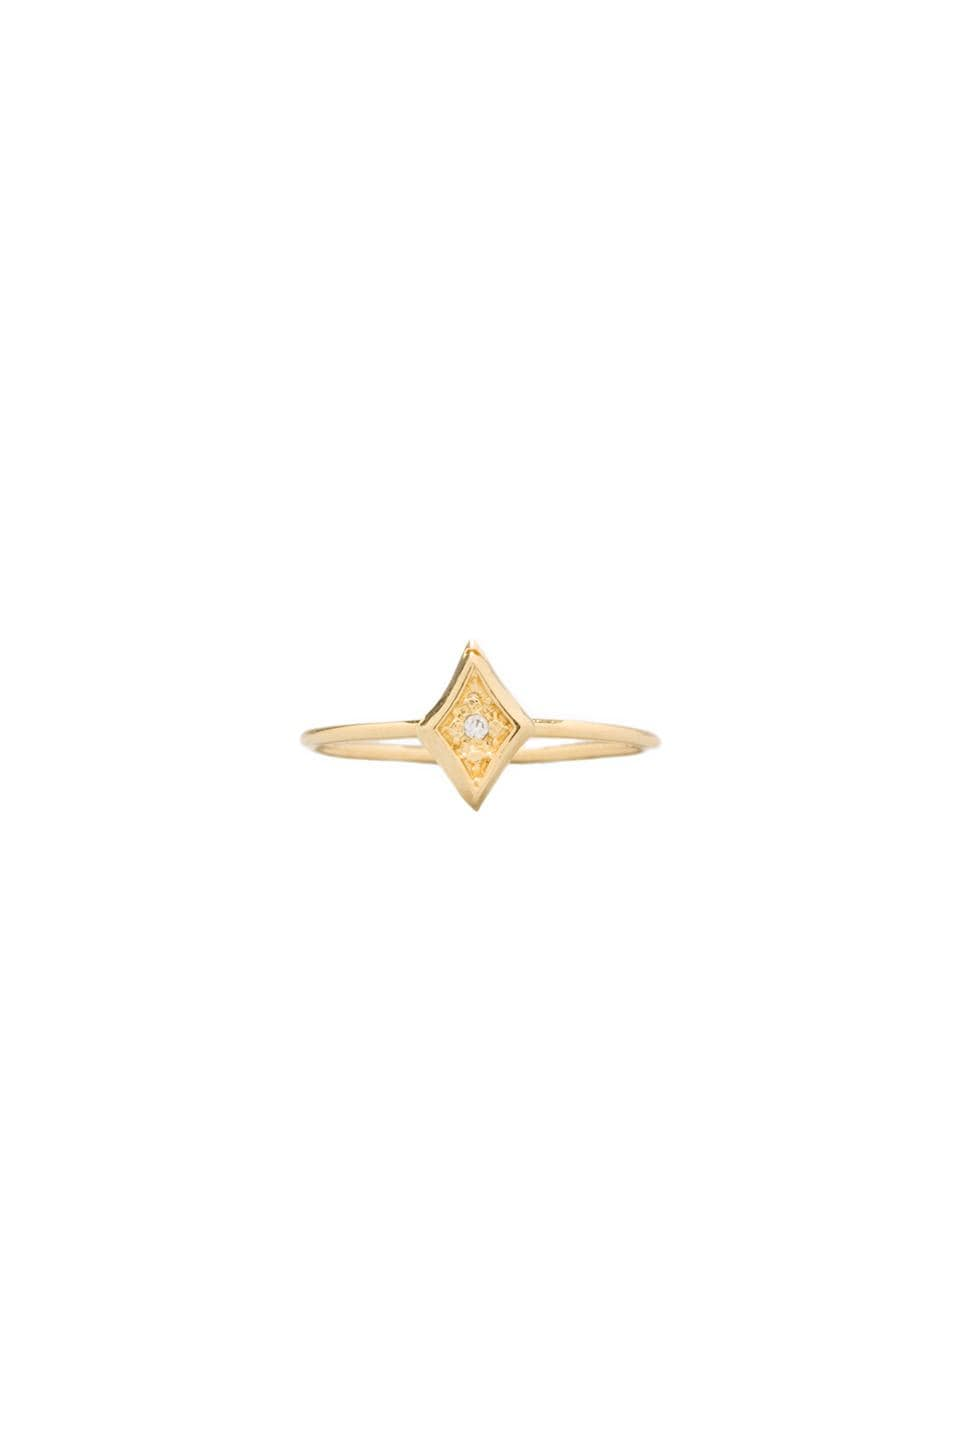 Jacquie Aiche CZ Vertical Kite Ring in Gold Vermeil